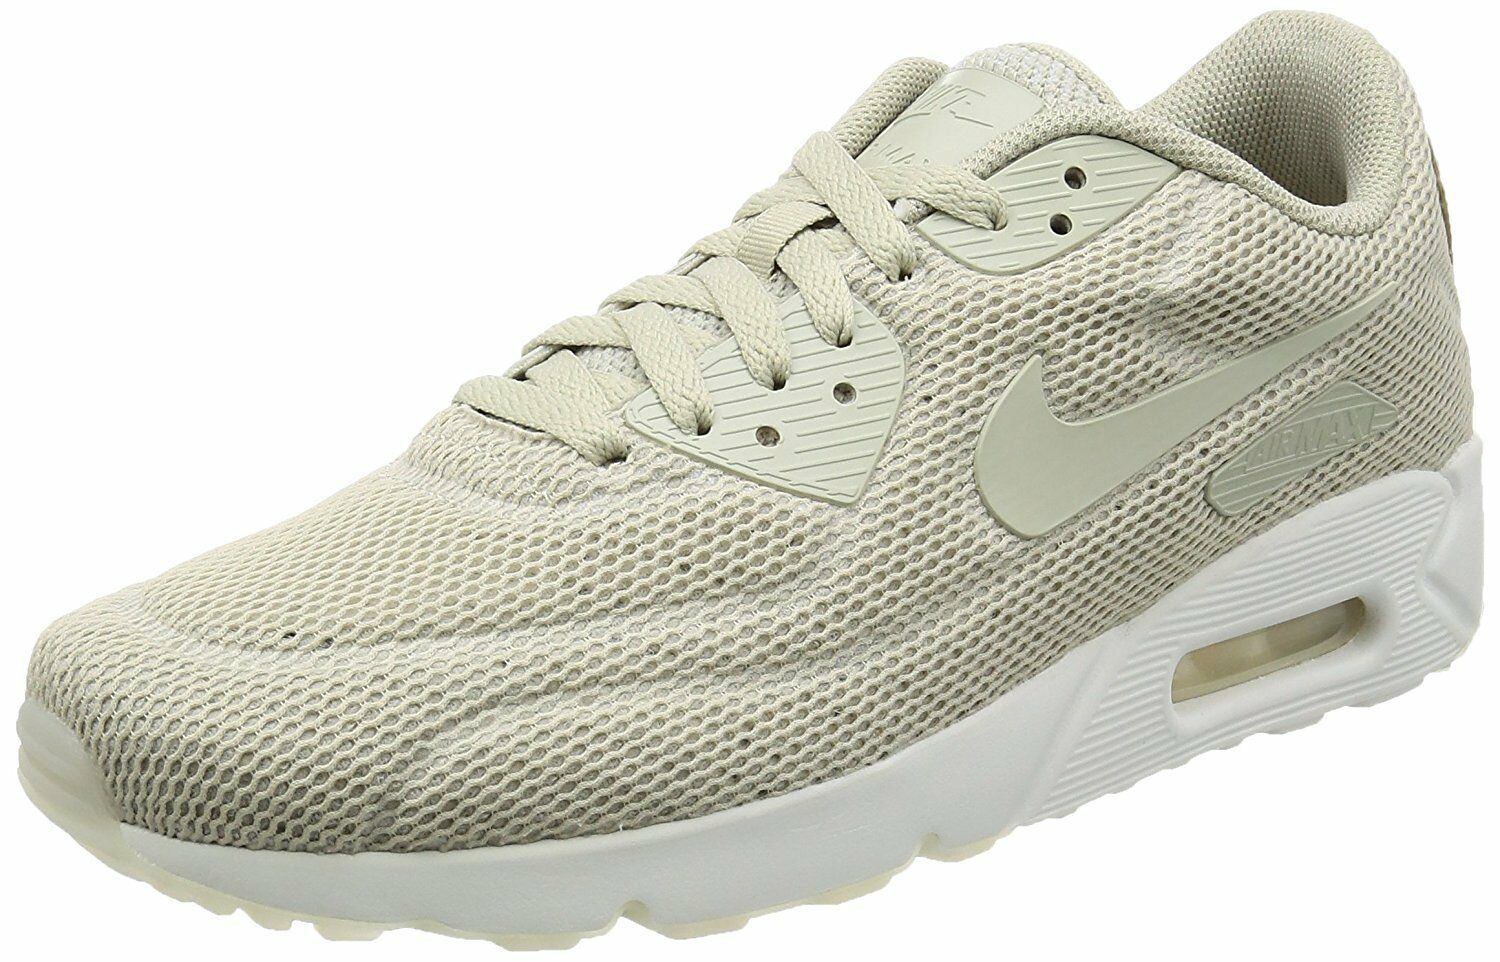 Nike Air Max 90 Ultra 2.0 BR Pale Grey/Pale Grey (898010 002)